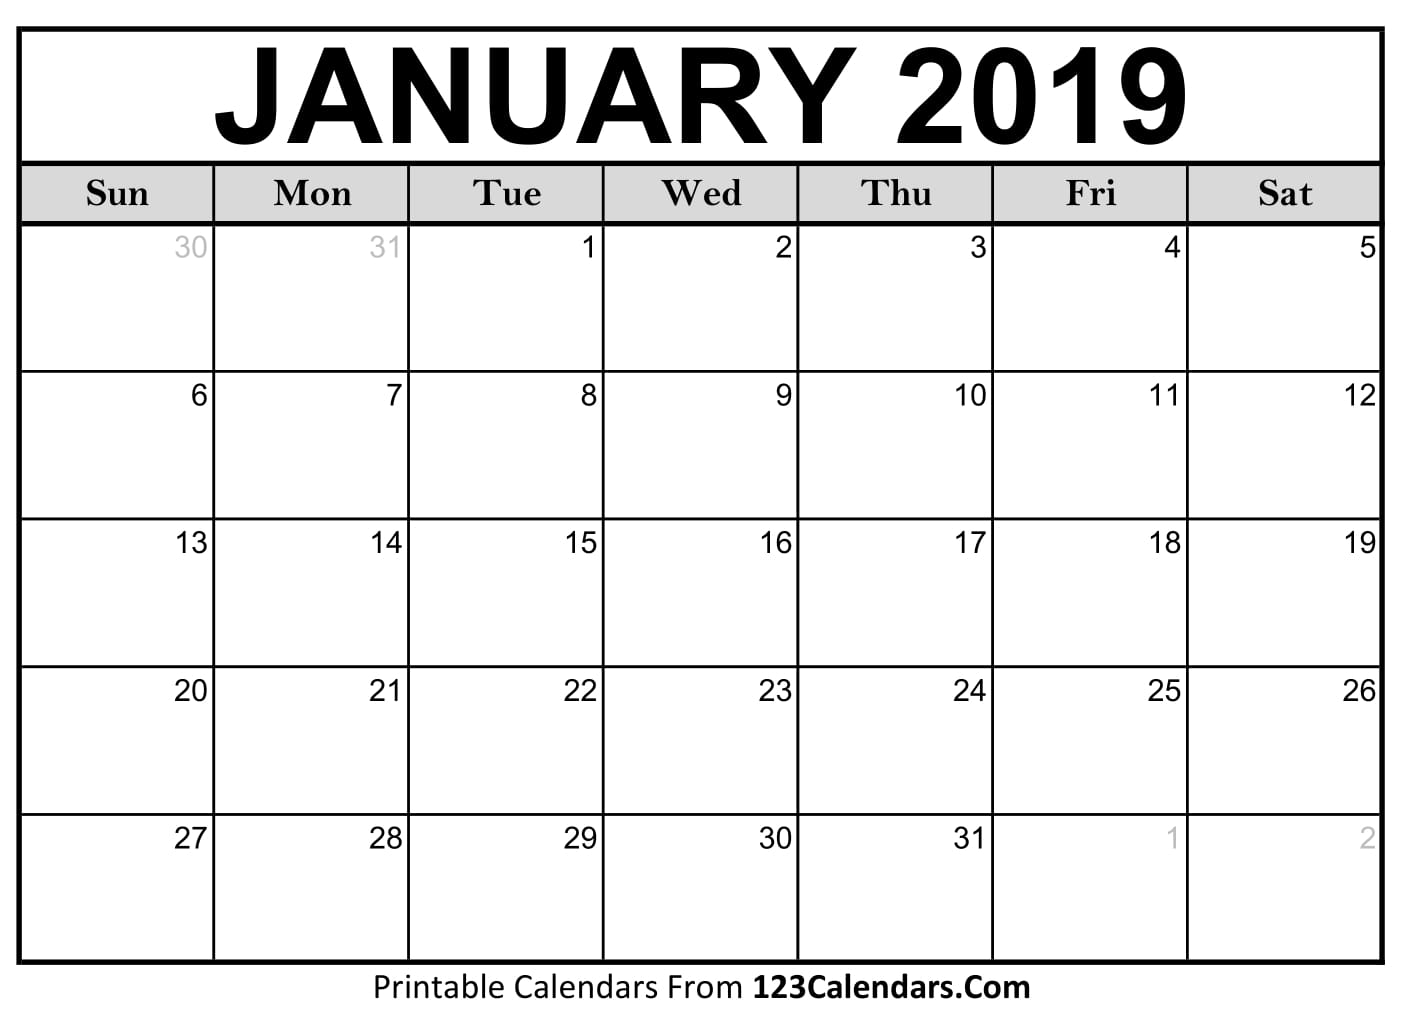 Calendar January 2019 2019 Printable Monthly Calendar Formats (Blank) | Zenodo